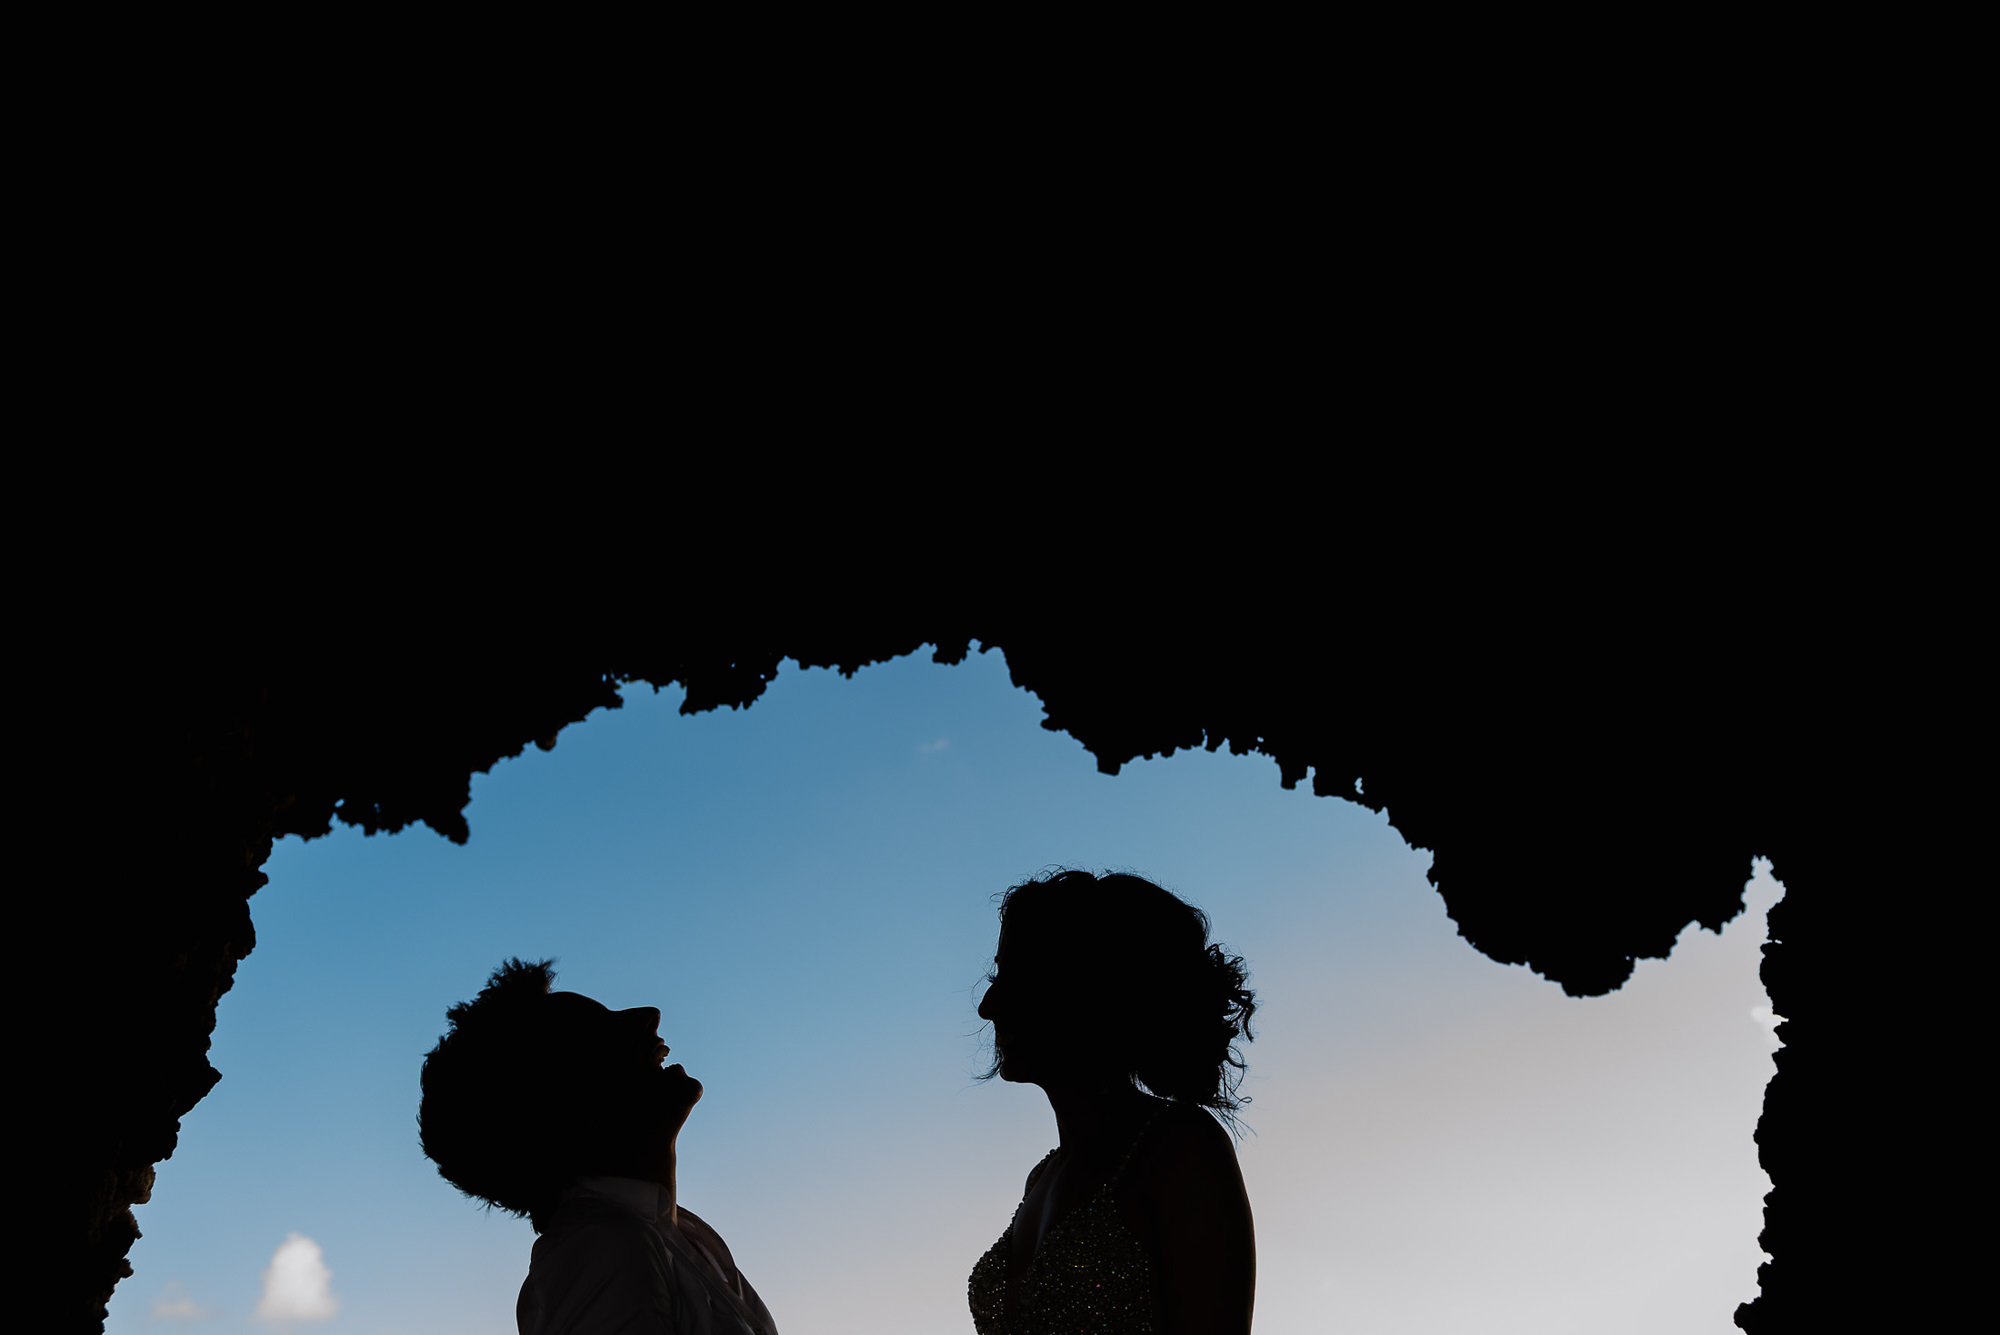 Silhouette of couple in cave, by Citlalli Rico